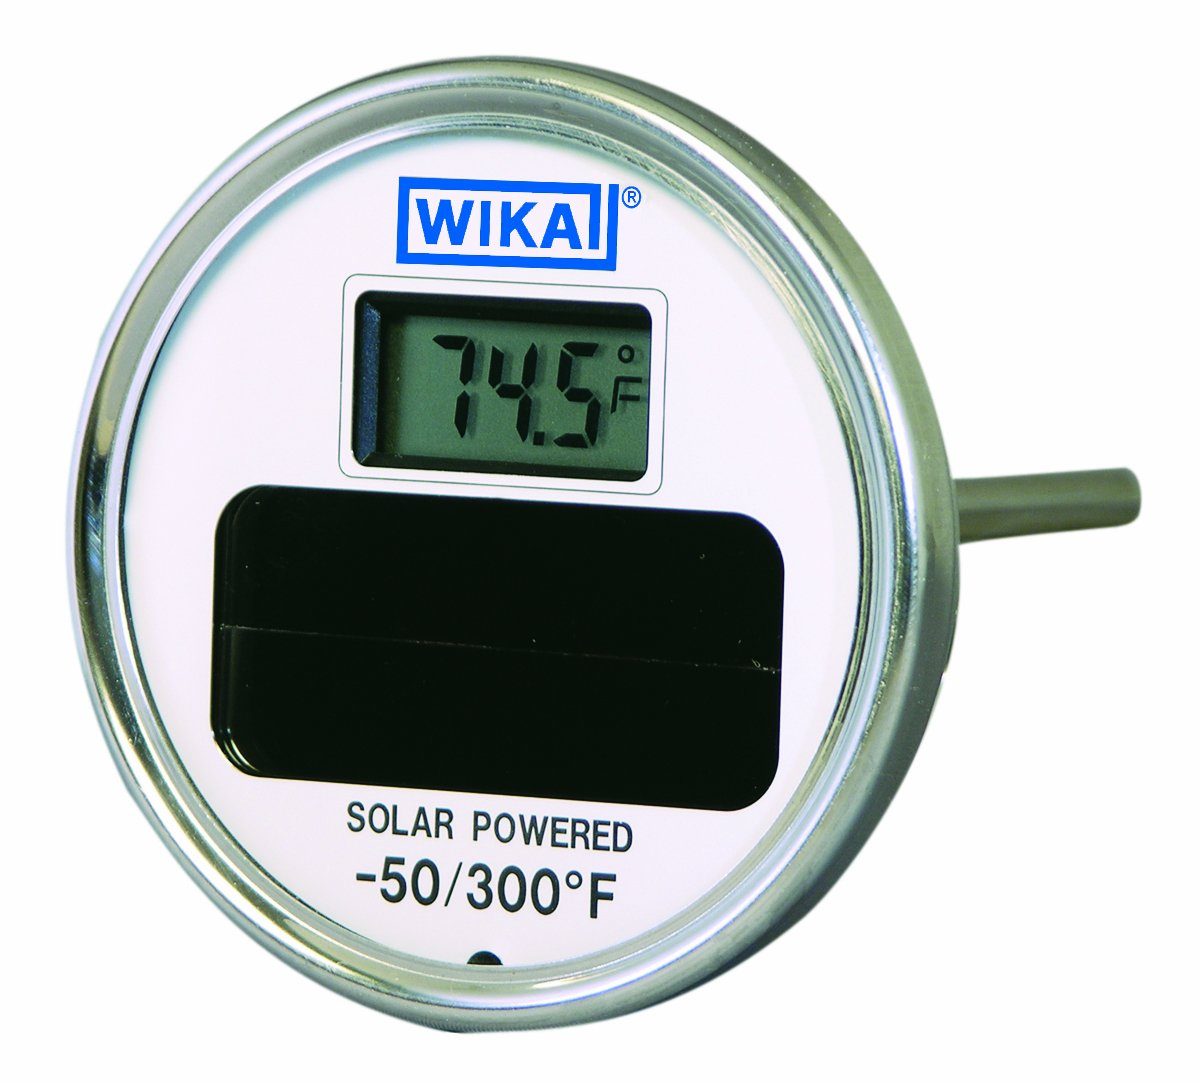 WIKA TI.80 Stainless Steel 304  Solar Digital Thermometer, -50/300 Degrees F, 9'' Stem, 1/2'' NPT Connection, Center Back Mount